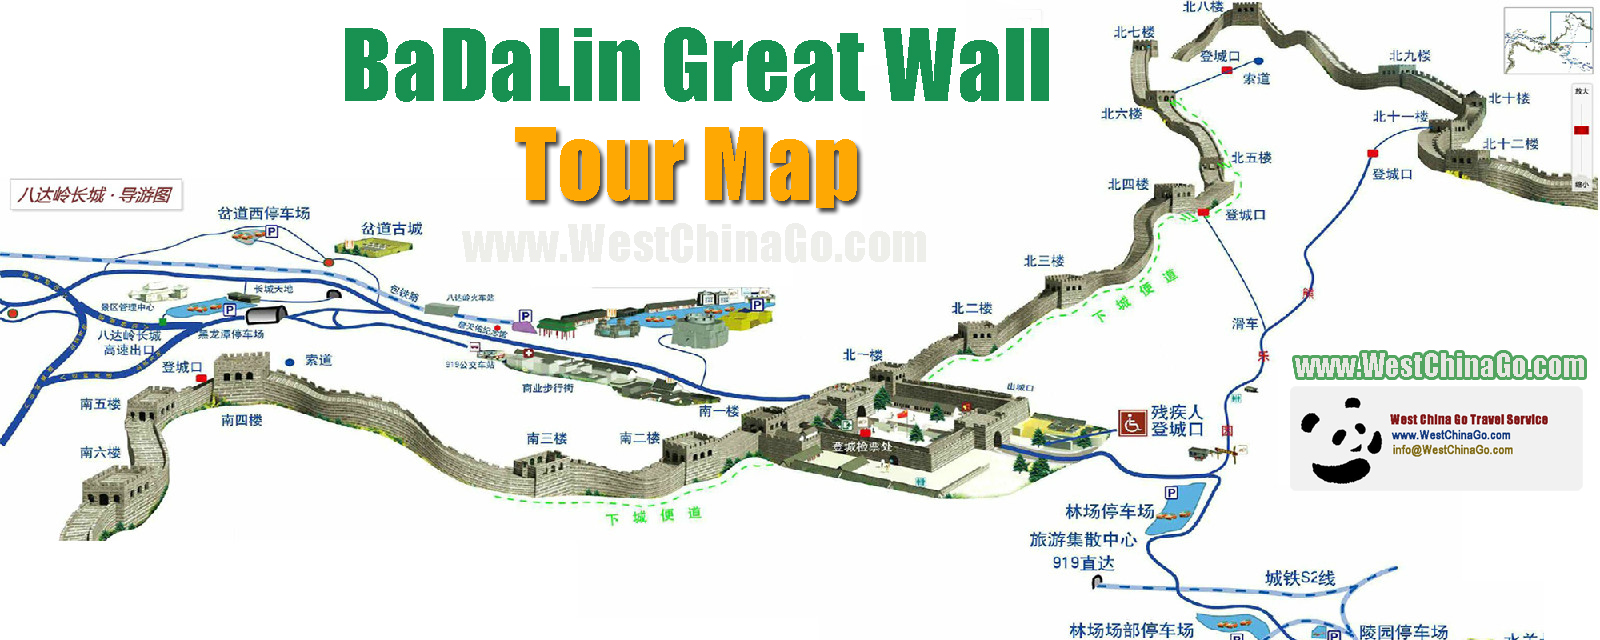 beijing badaling great wall Tour Map